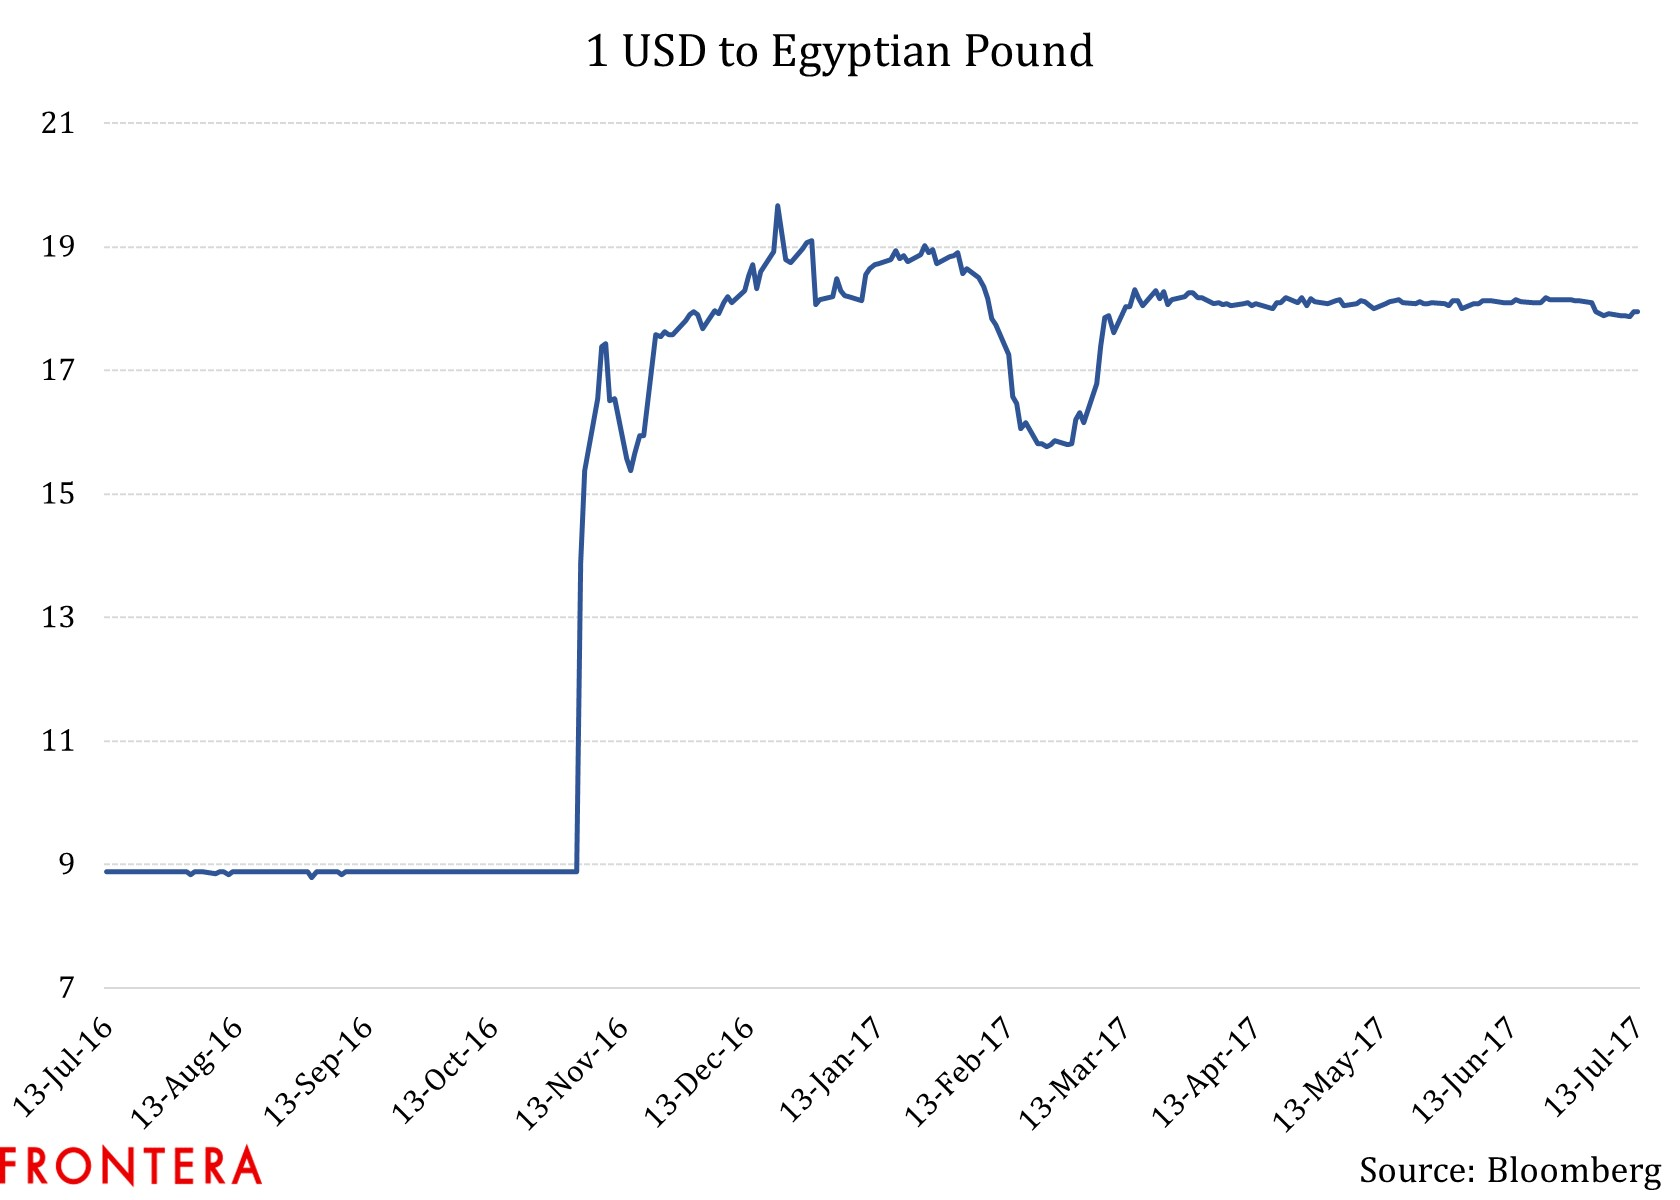 How does it work? EgyptRates Crawlers crawl all rates from different Egyptian Banks periodically to get recent updates From supported banks. Our crawlers do this automatically and without any human interaction to assure accuracy.